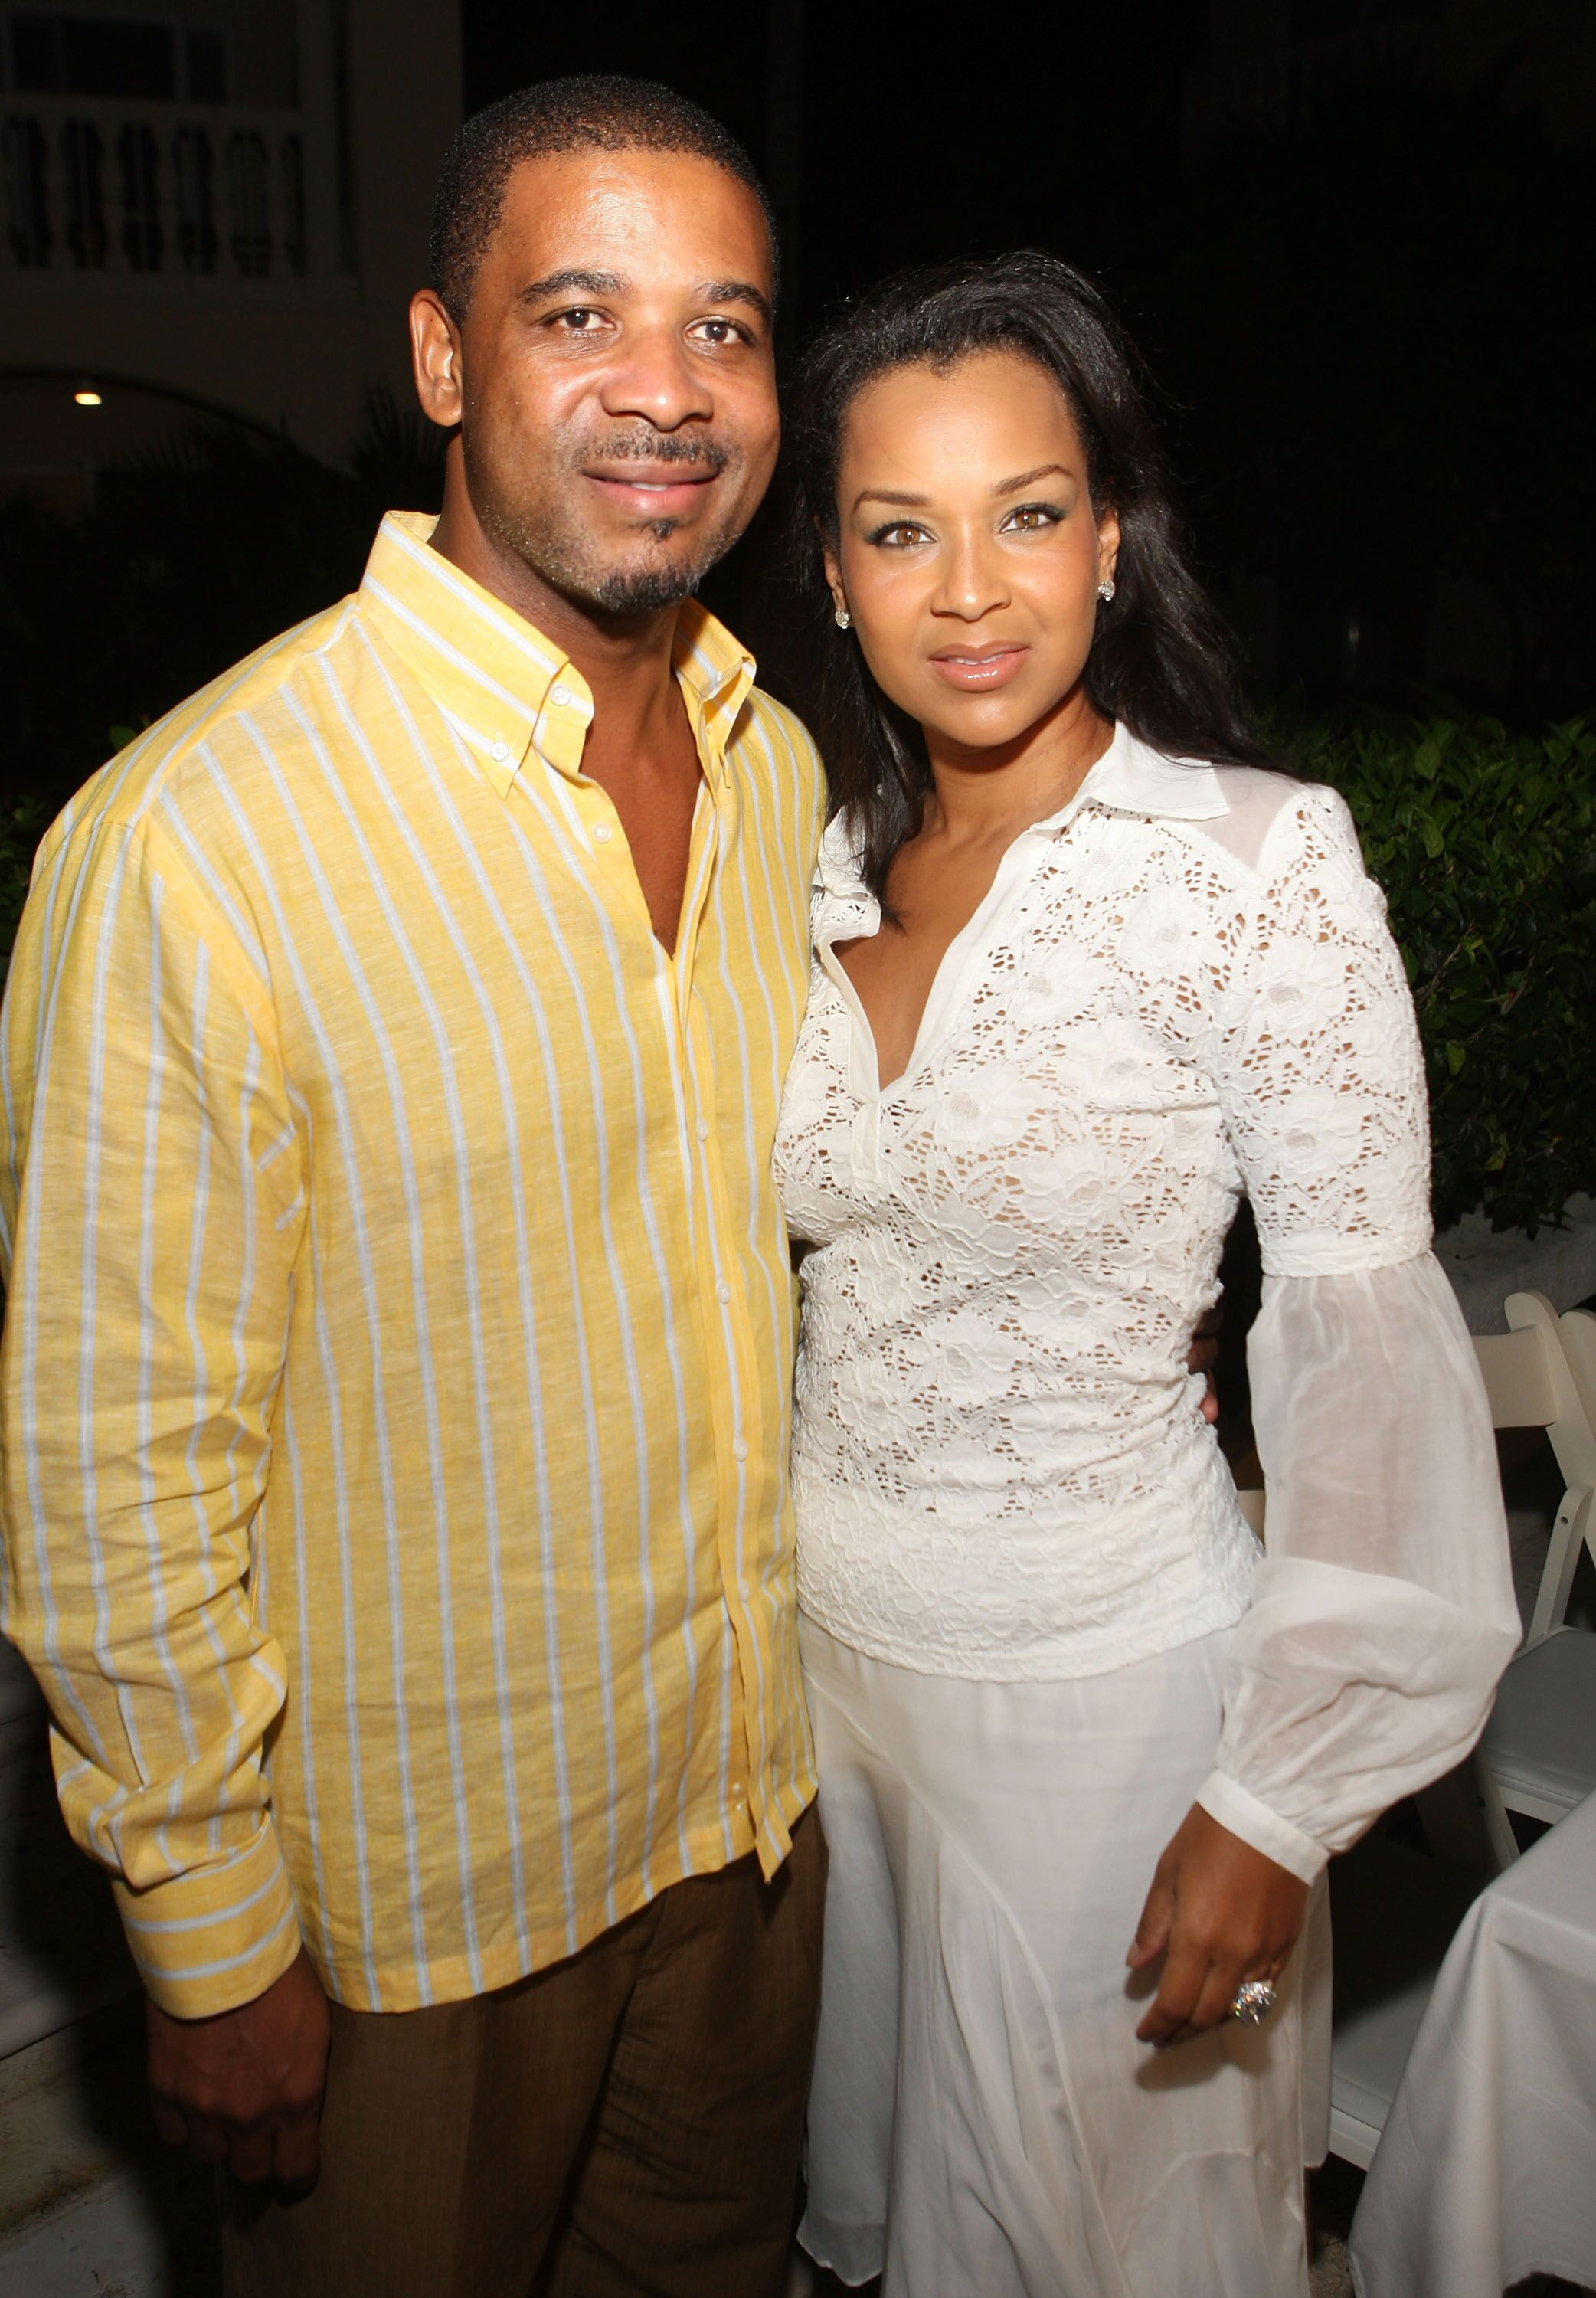 Dr. Michael E. Misick and LisaRaye Misick attend the Turks and Caicos International Film Festival at Grace Bay on October 16, 2007 | Photo: Getty Images